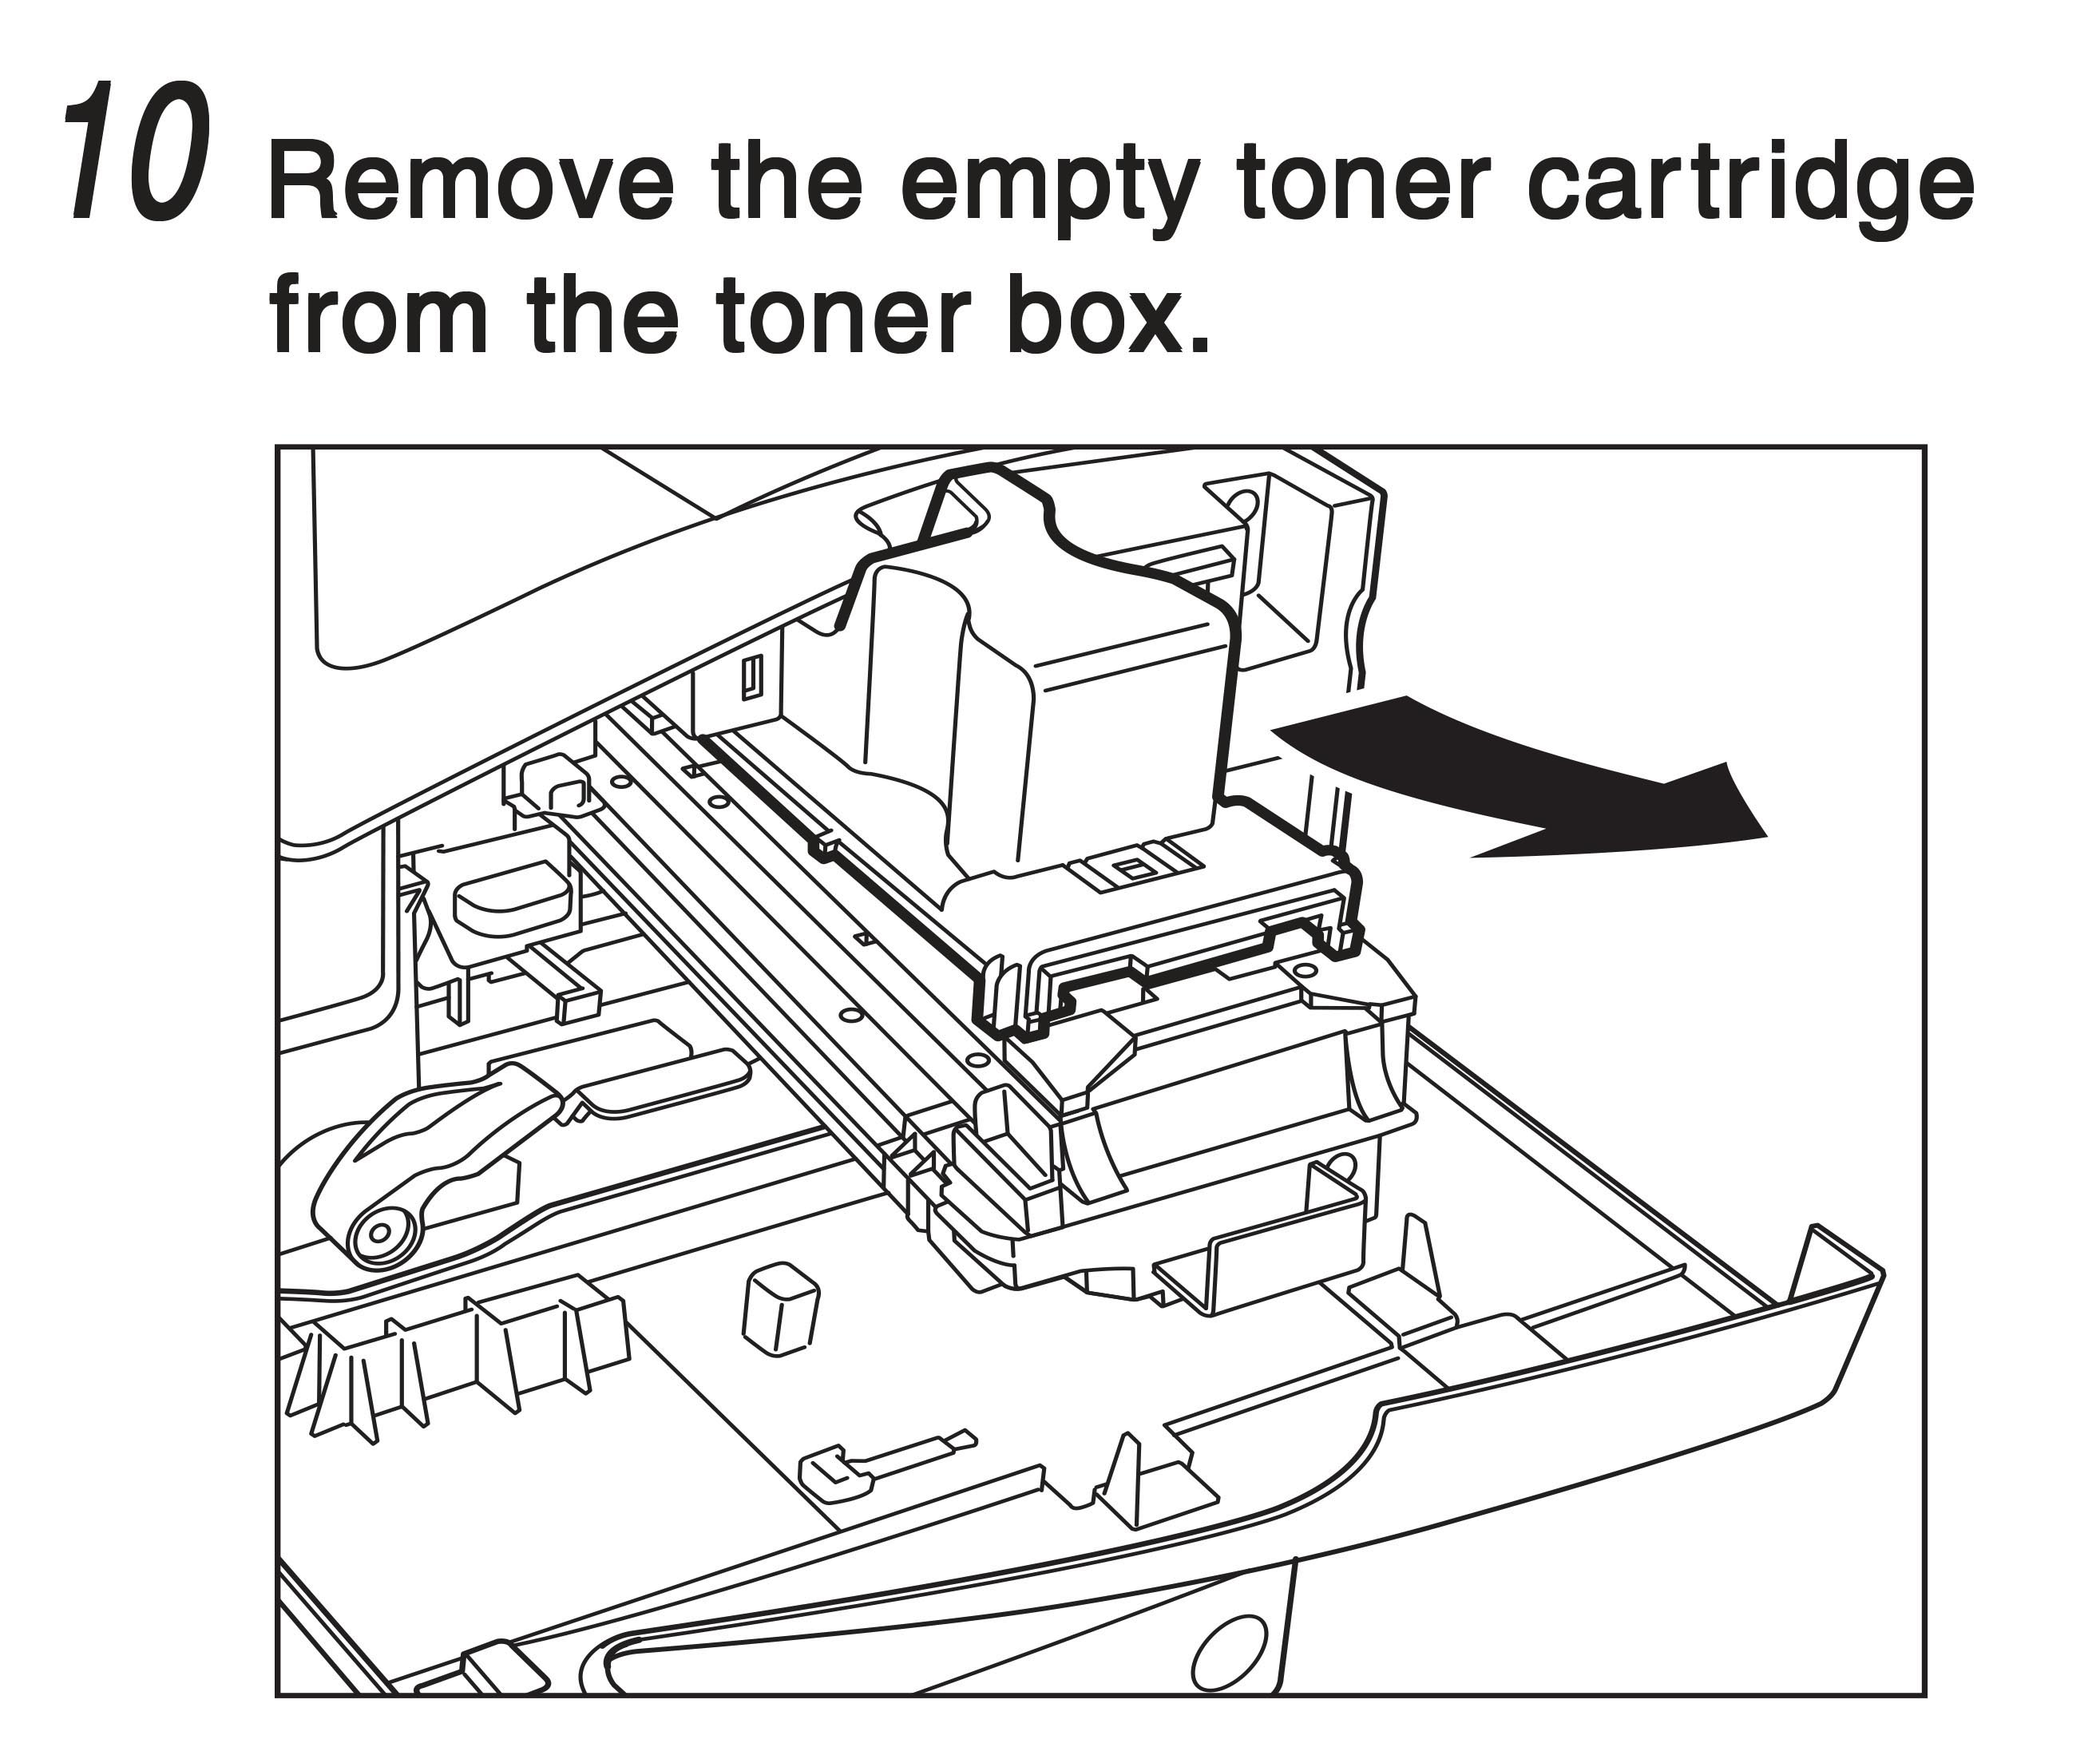 10. Remove the empty toner cartridge from the toner box.